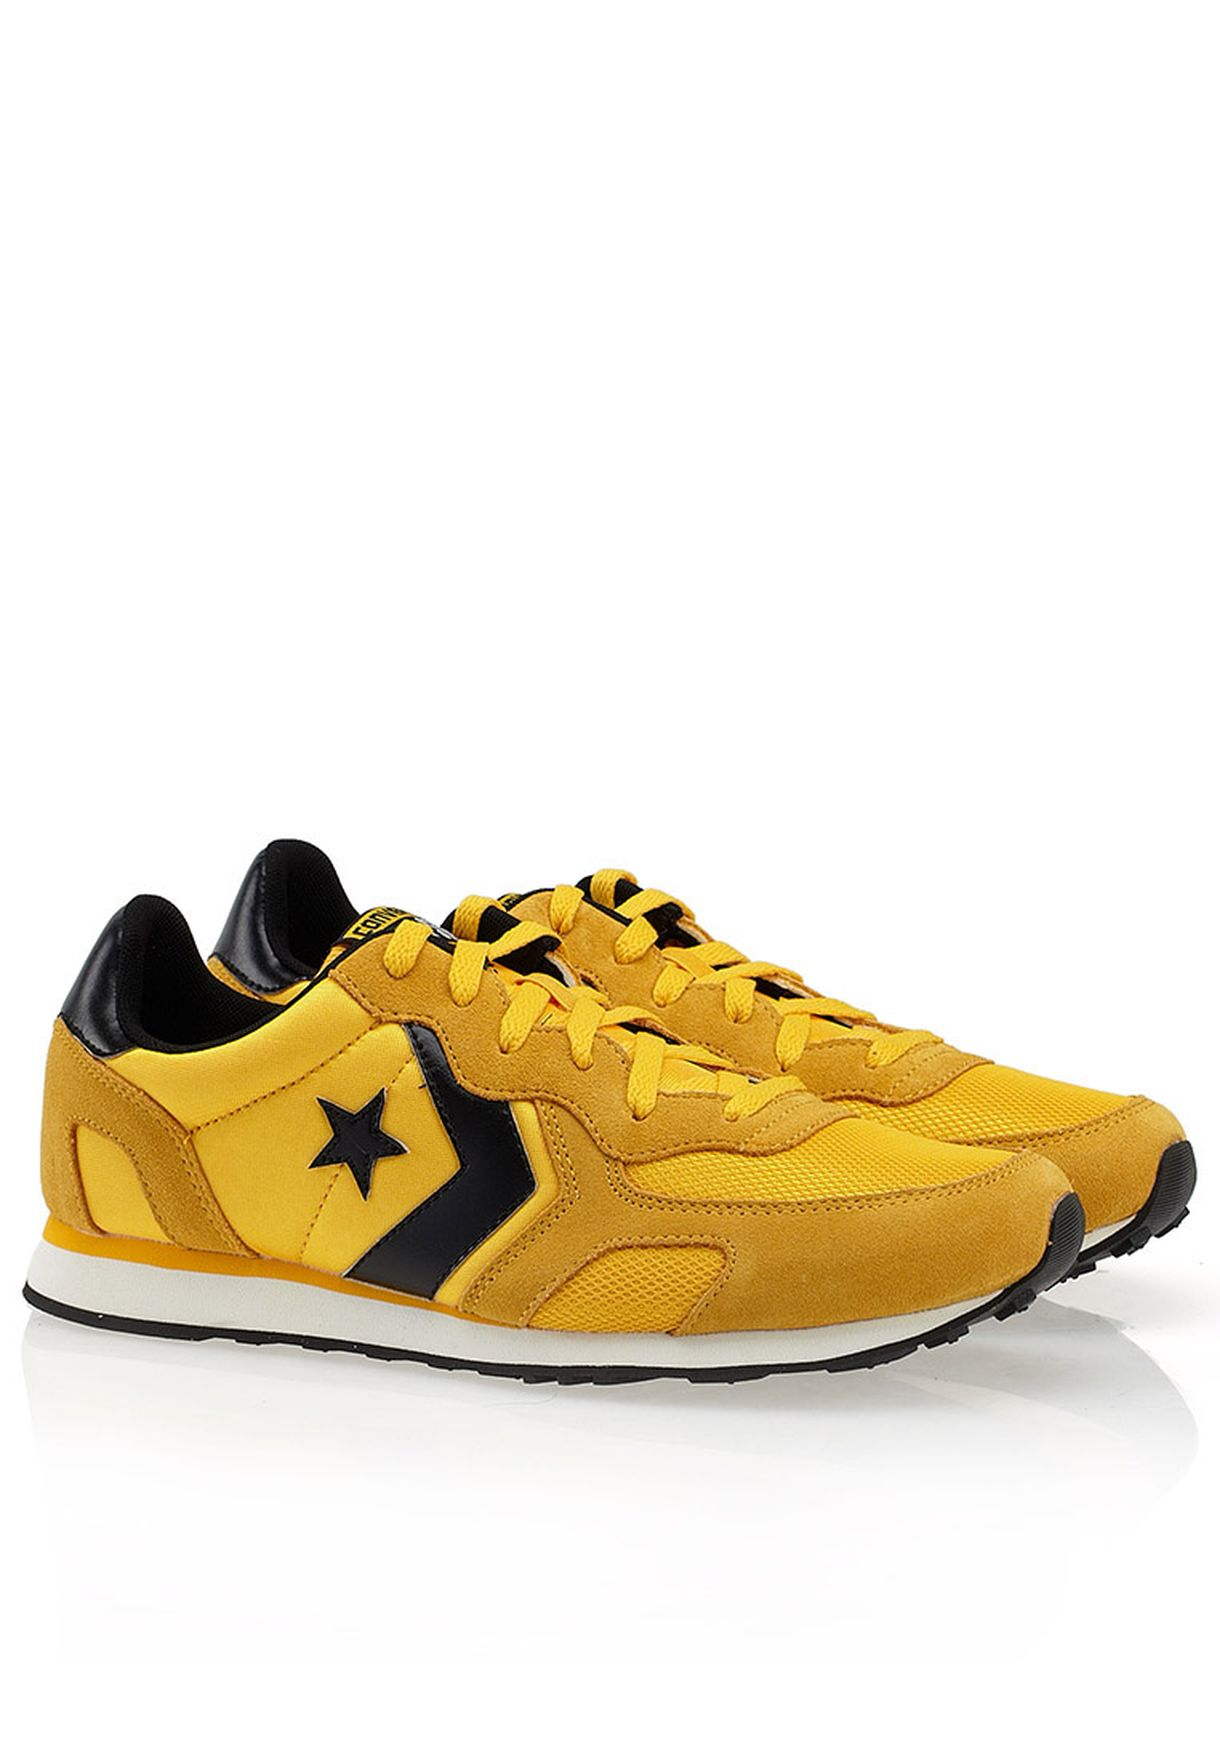 a01d42170105 Shop Converse yellow Auckland Racer Sneakers for Men in UAE ...